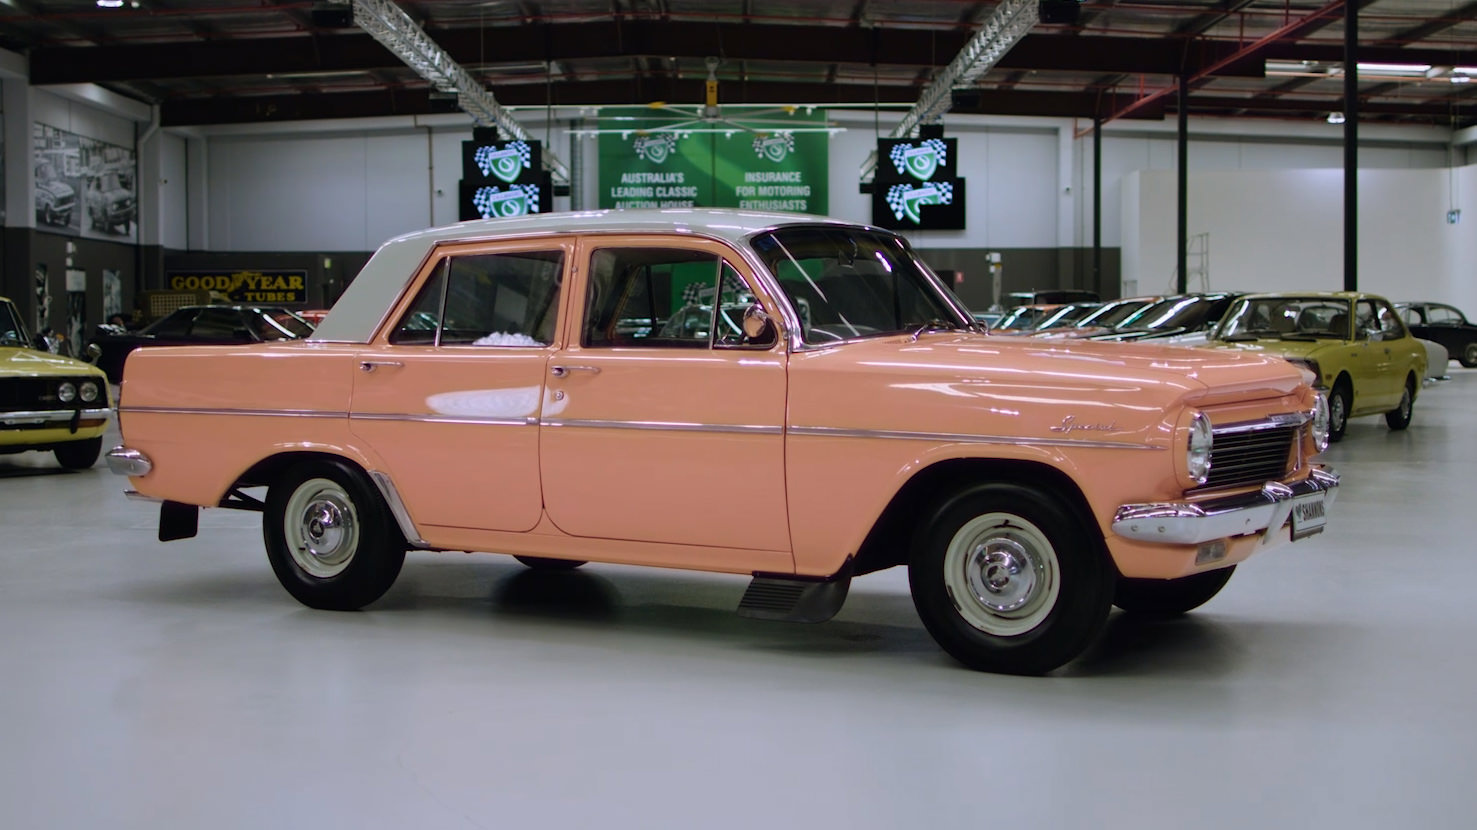 1963 Holden EH Special Sedan - 2021 Shannons Autumn Timed Online Auction